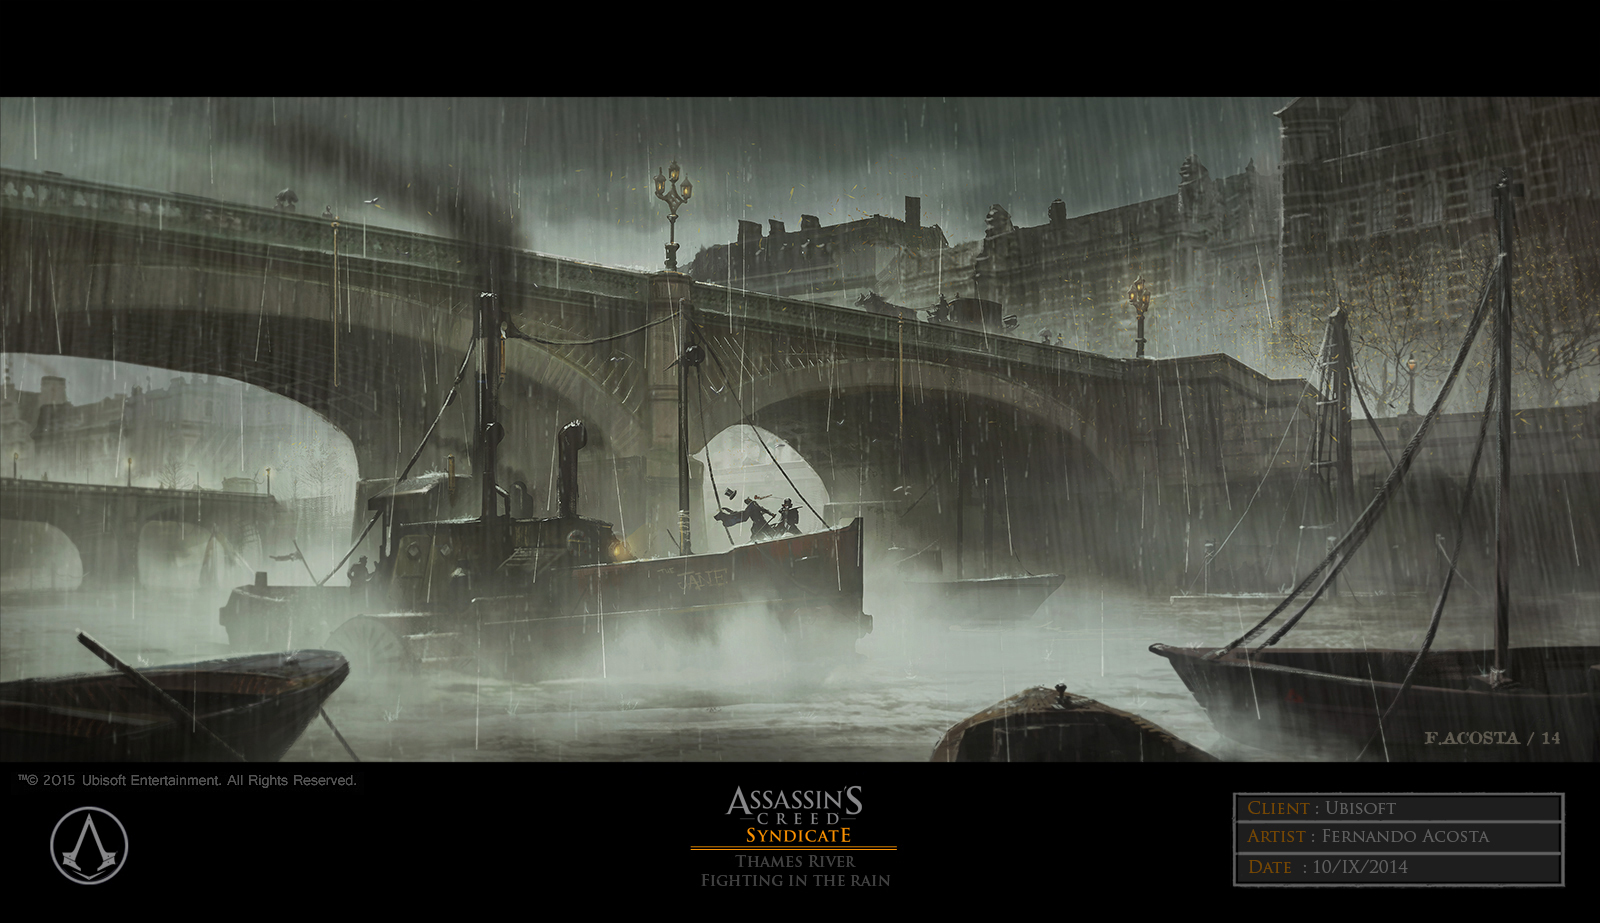 http://conceptartworld.com/wp-content/uploads/2015/10/10_Assassins_Creed_Syndicate_Concept_Art_FA_env_ThamesRiver_001bb.jpg